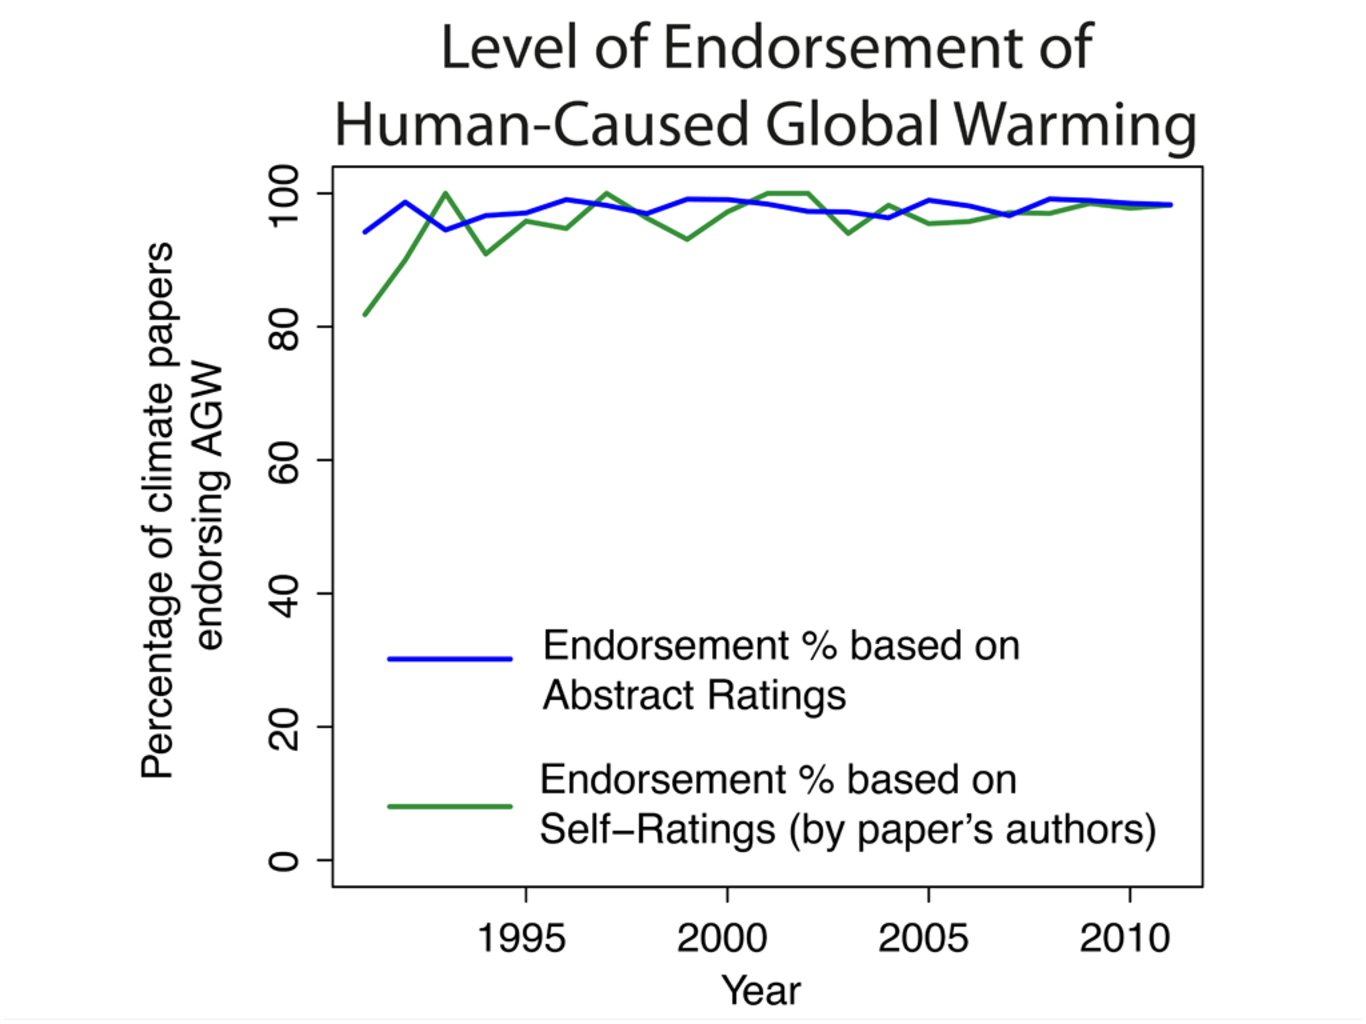 global warming position paper Quotation from page 6: the number of papers rejecting agw [anthropogenic, or human-caused, global warming] is a miniscule proportion of the published research, with the percentage slightly decreasing over time.